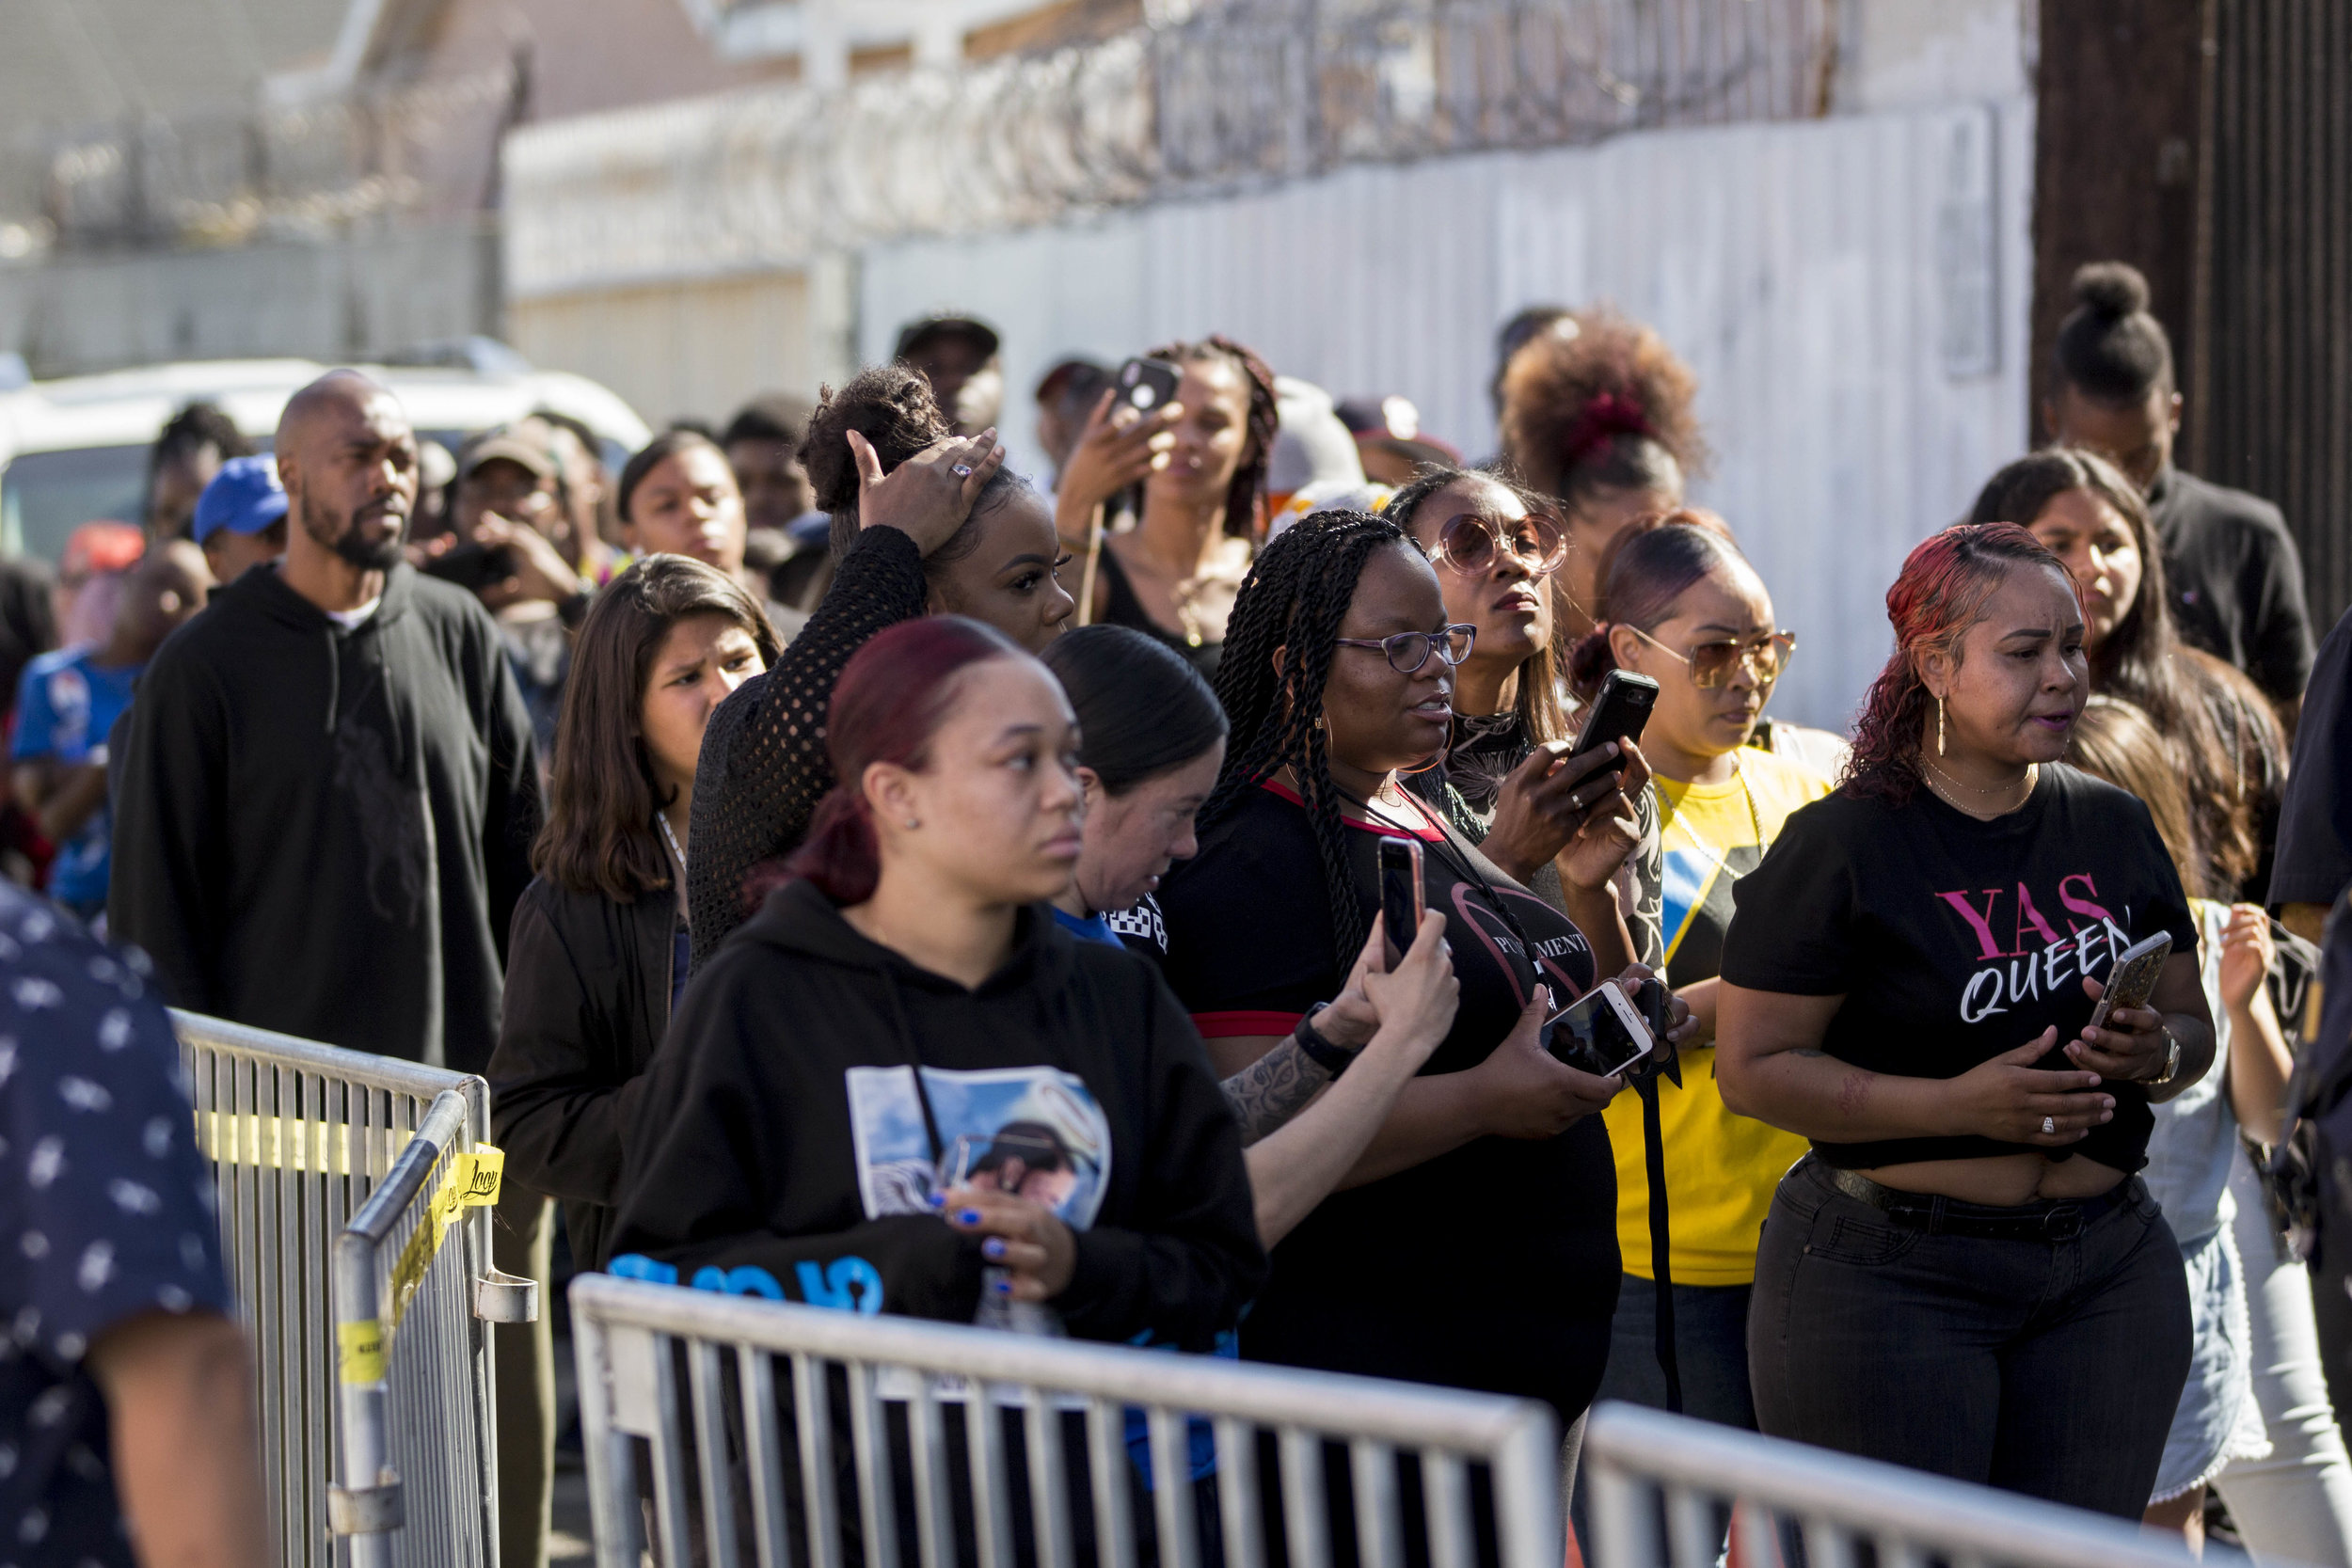 People wait in line for their turn to pay their respects to the slain rapper Nipsey Hussle at the makeshift memorial near The Marathon Clothing store on Slauson Avenue in Los Angeles, California on Wednesday, April 6, 2019. The 33-year-old rapper was murdered on March 31 in front of The Marathon Clothing store which he owned. (Jose Lopez)